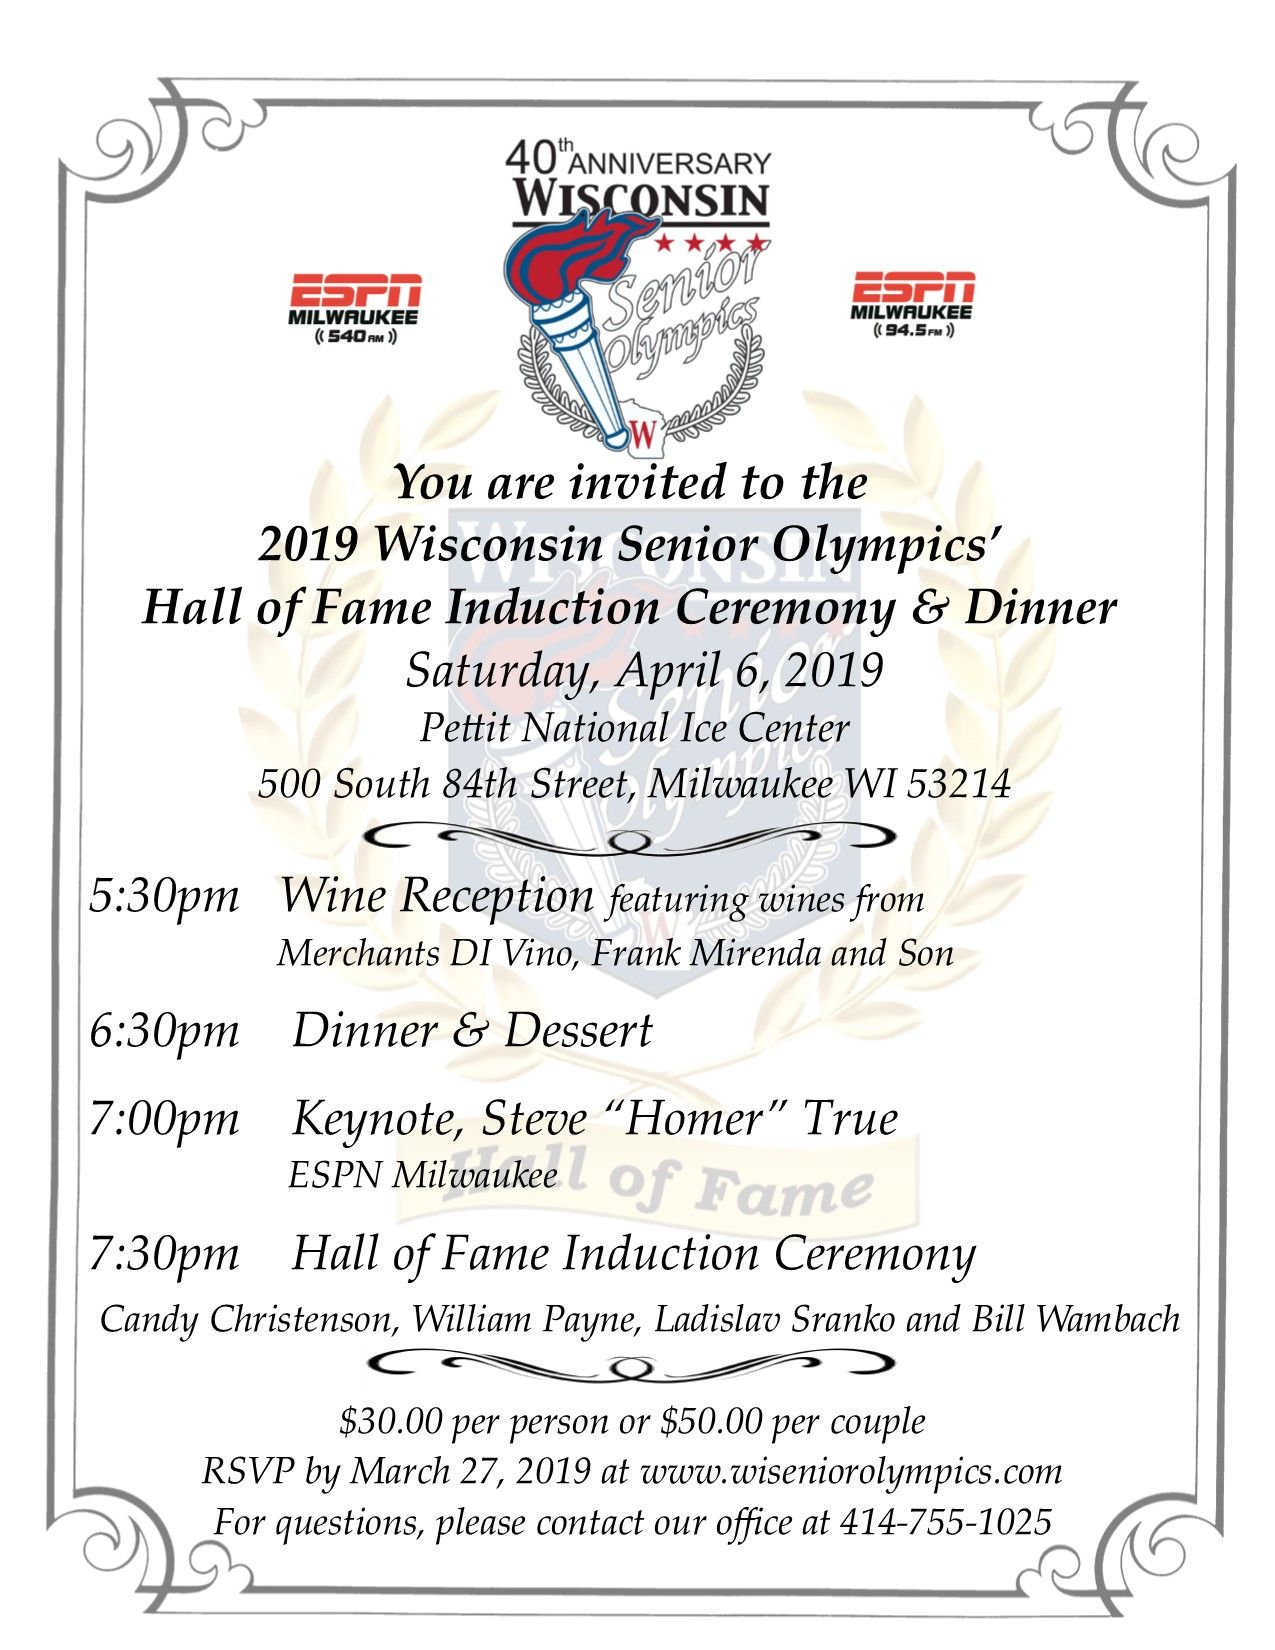 2019 Hall of Fame Celebration Set for April 6